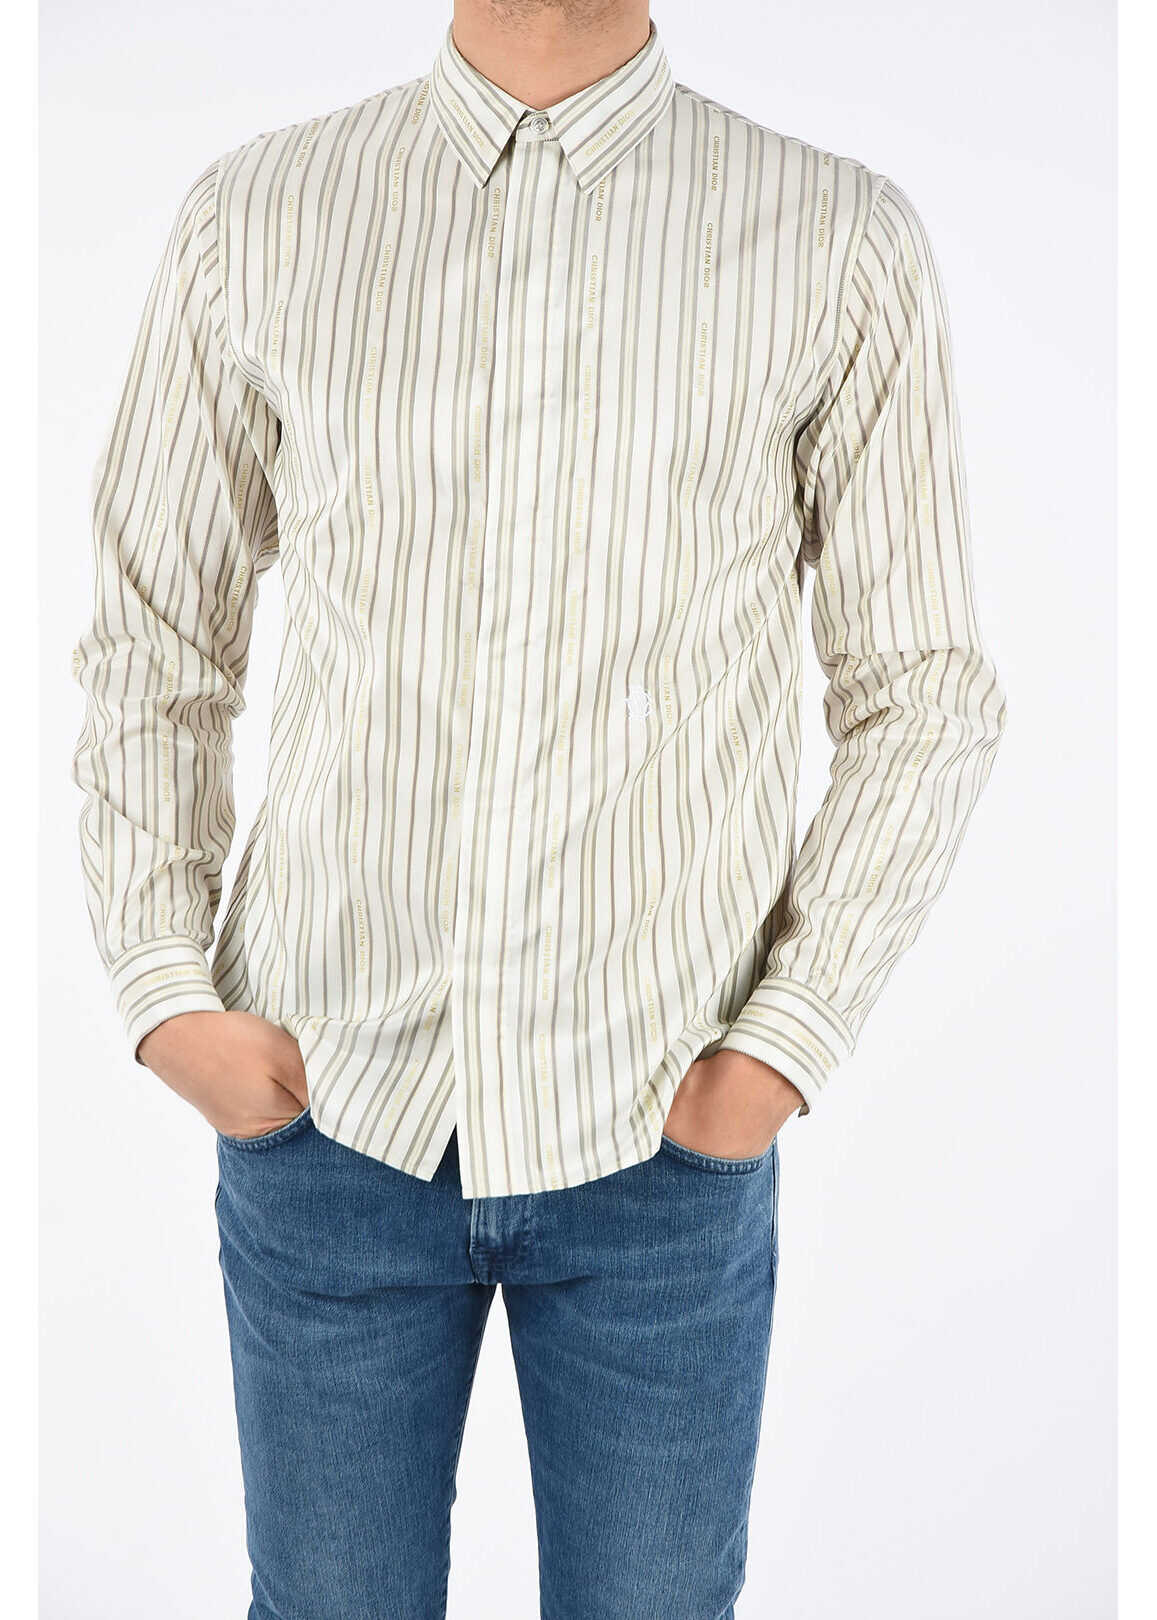 Dior barcode striped shirt WHITE